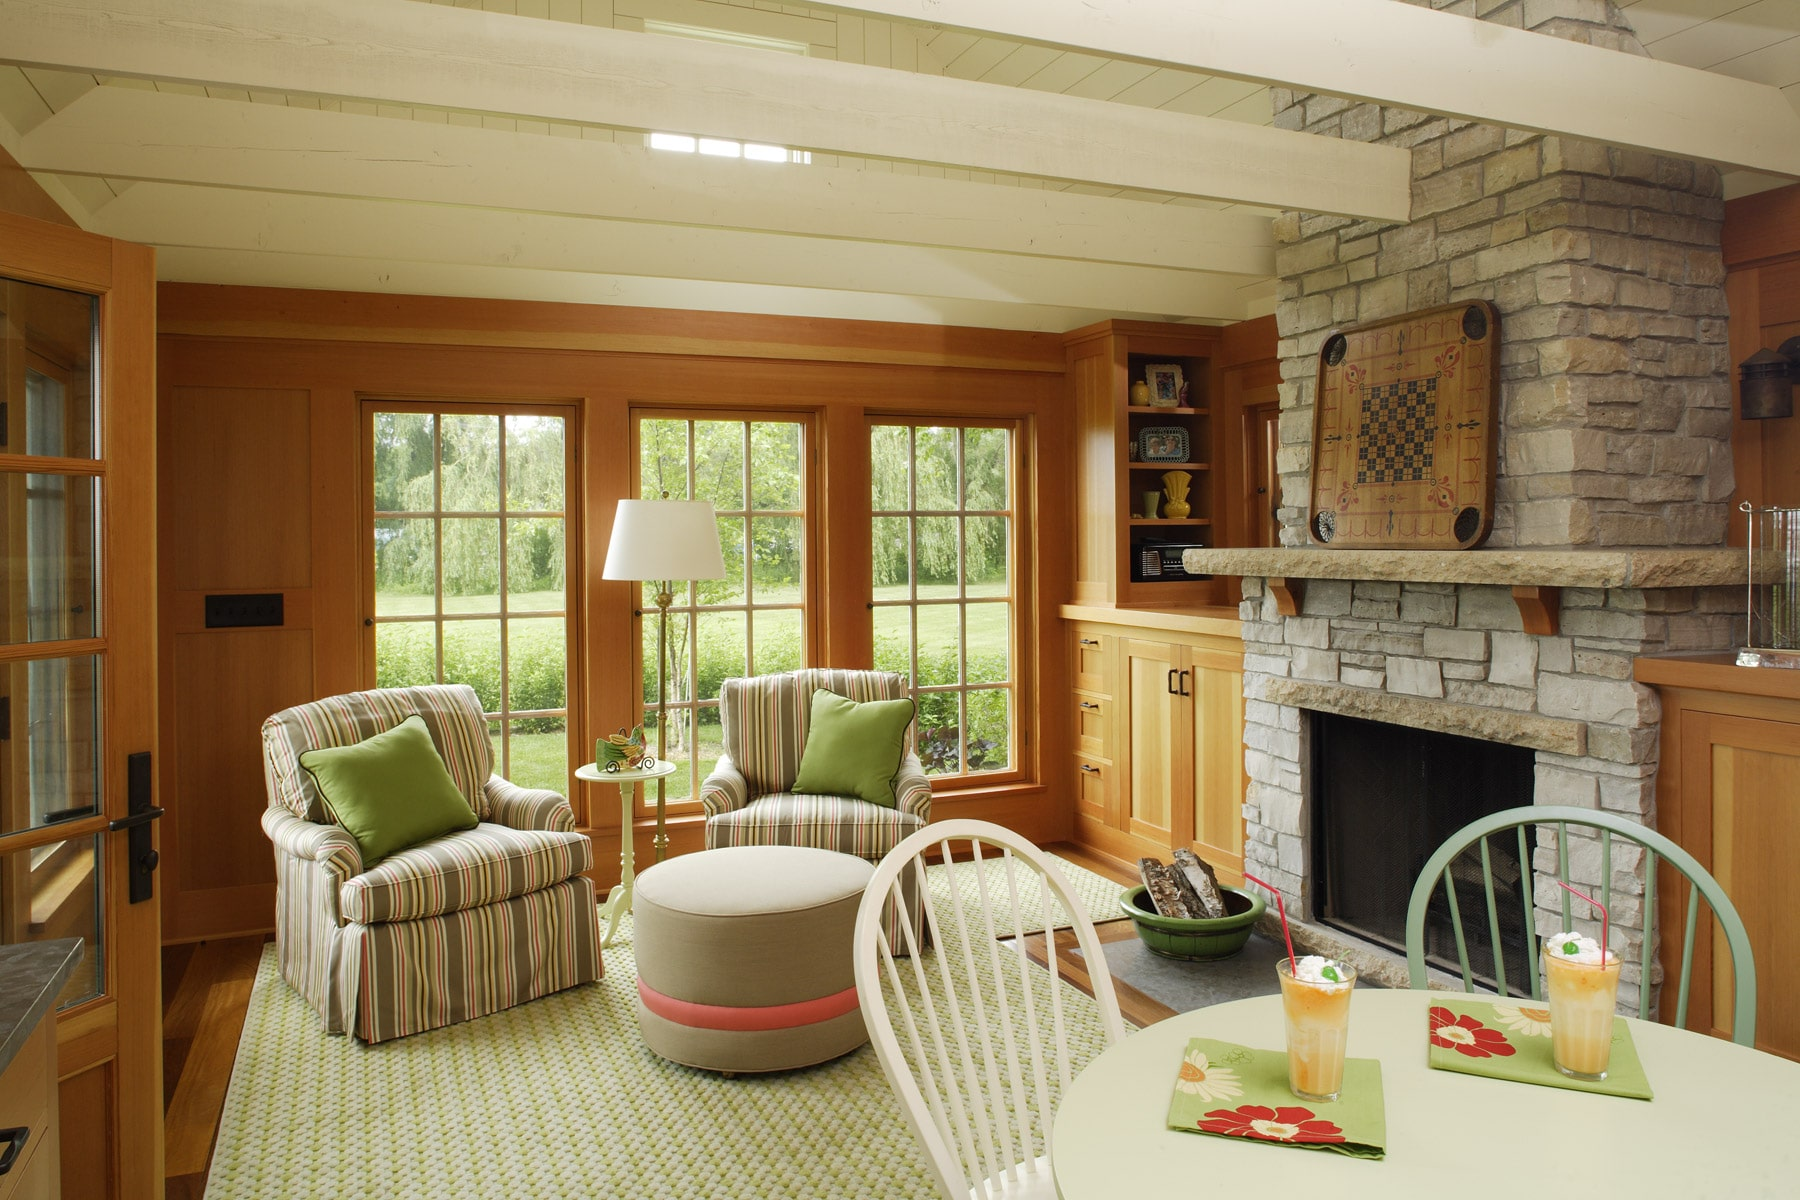 limestone masonry fireplace in boathouse with seating and dining